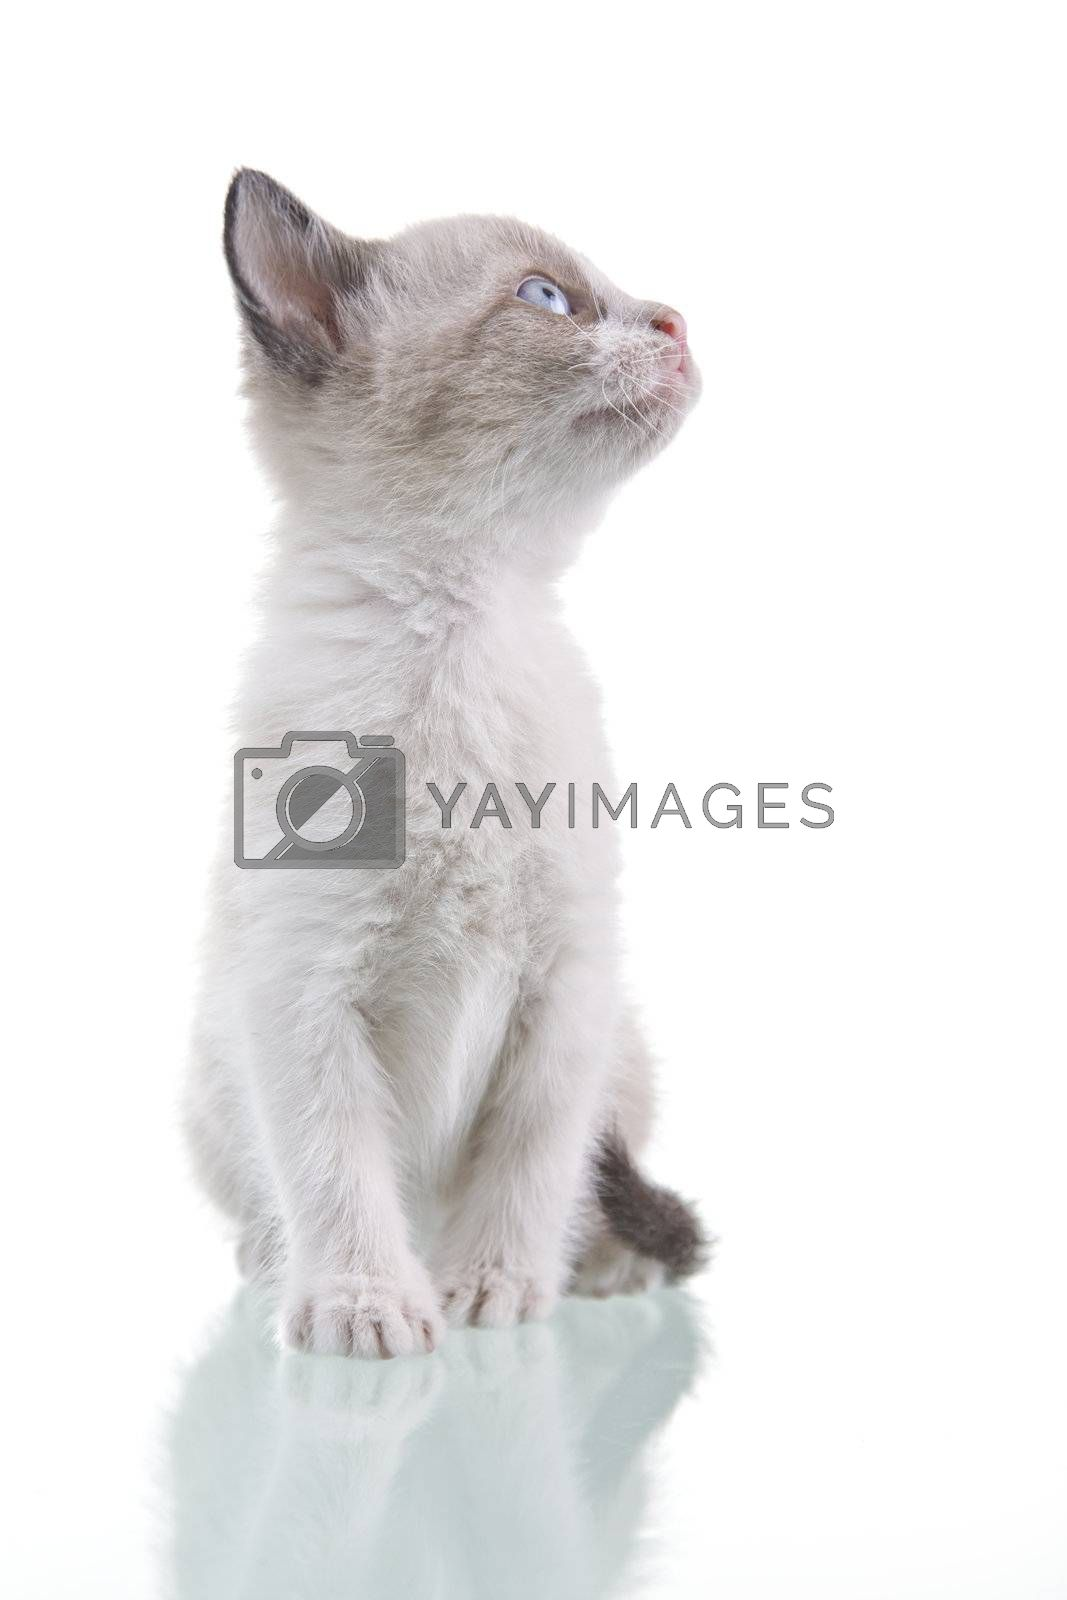 Adorable baby kitten sitting and looking up, isolated on white background.